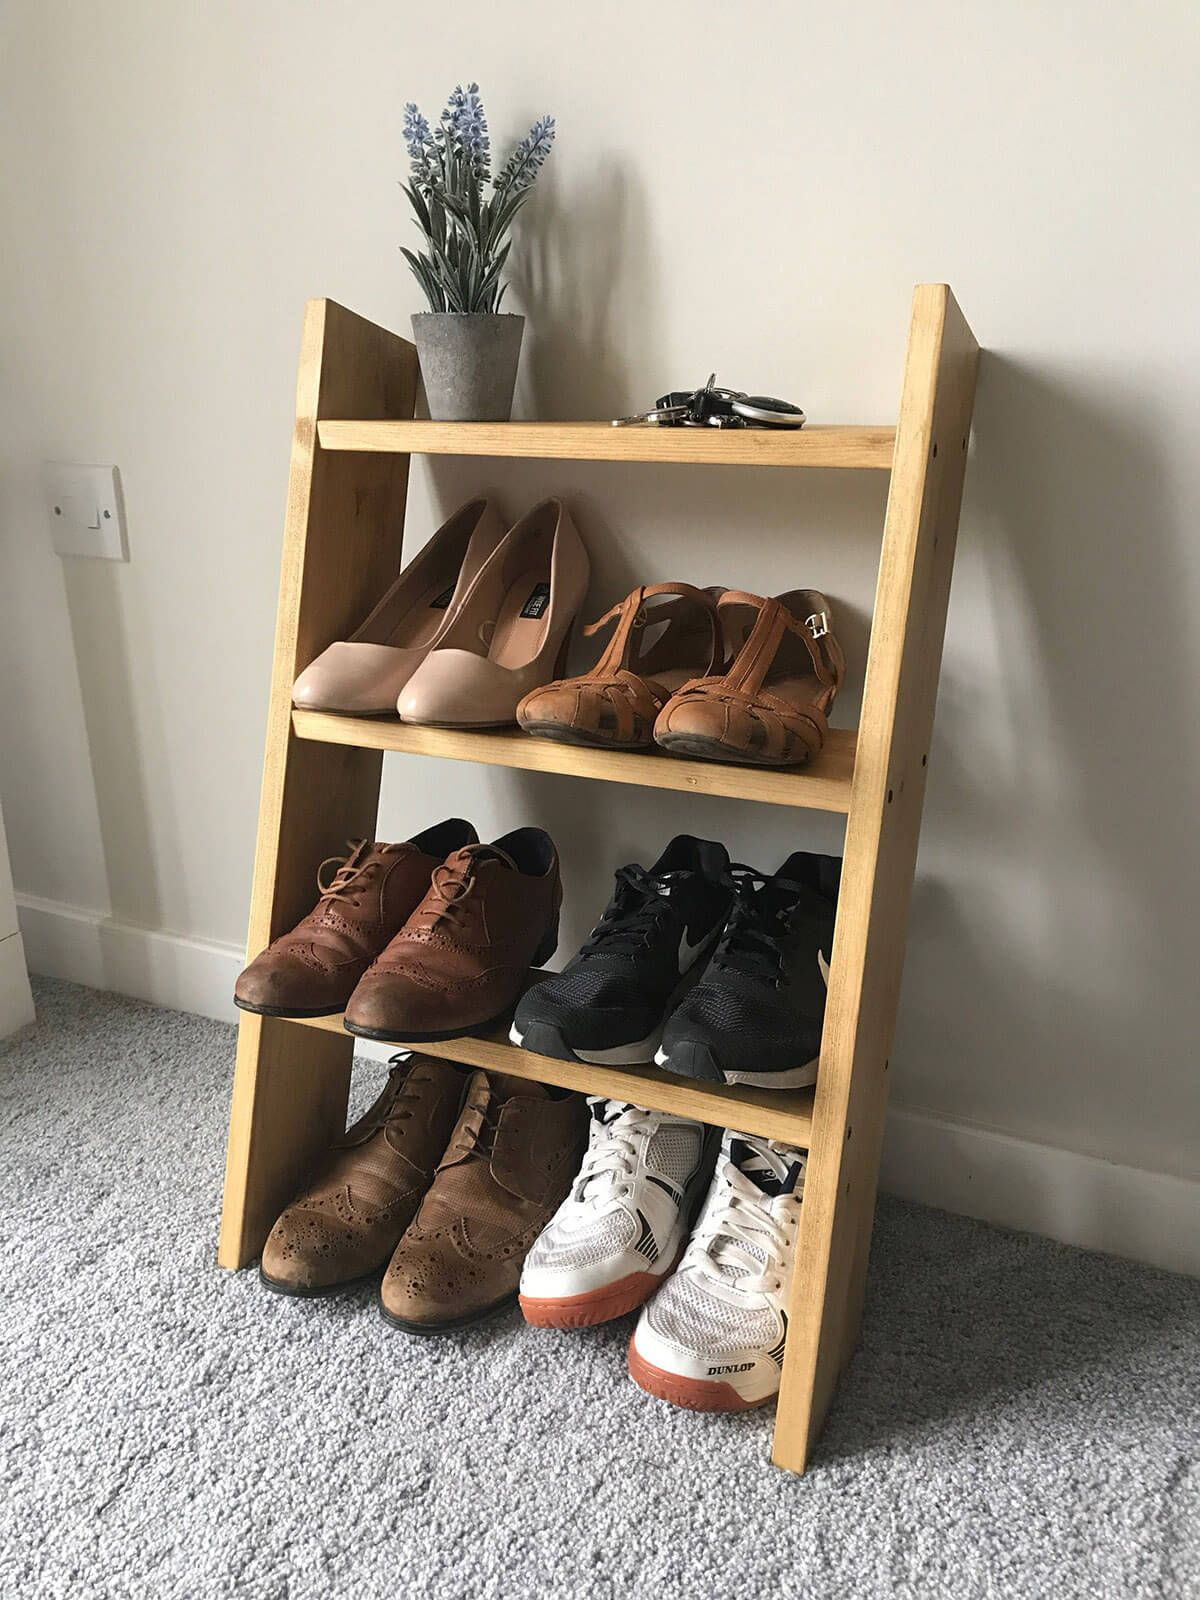 19 Clever Entryway Shoe Storage Ideas To Stop The Clutter Entryway Shoe Storage Wood Shoe Rack Shoe Rack Oak